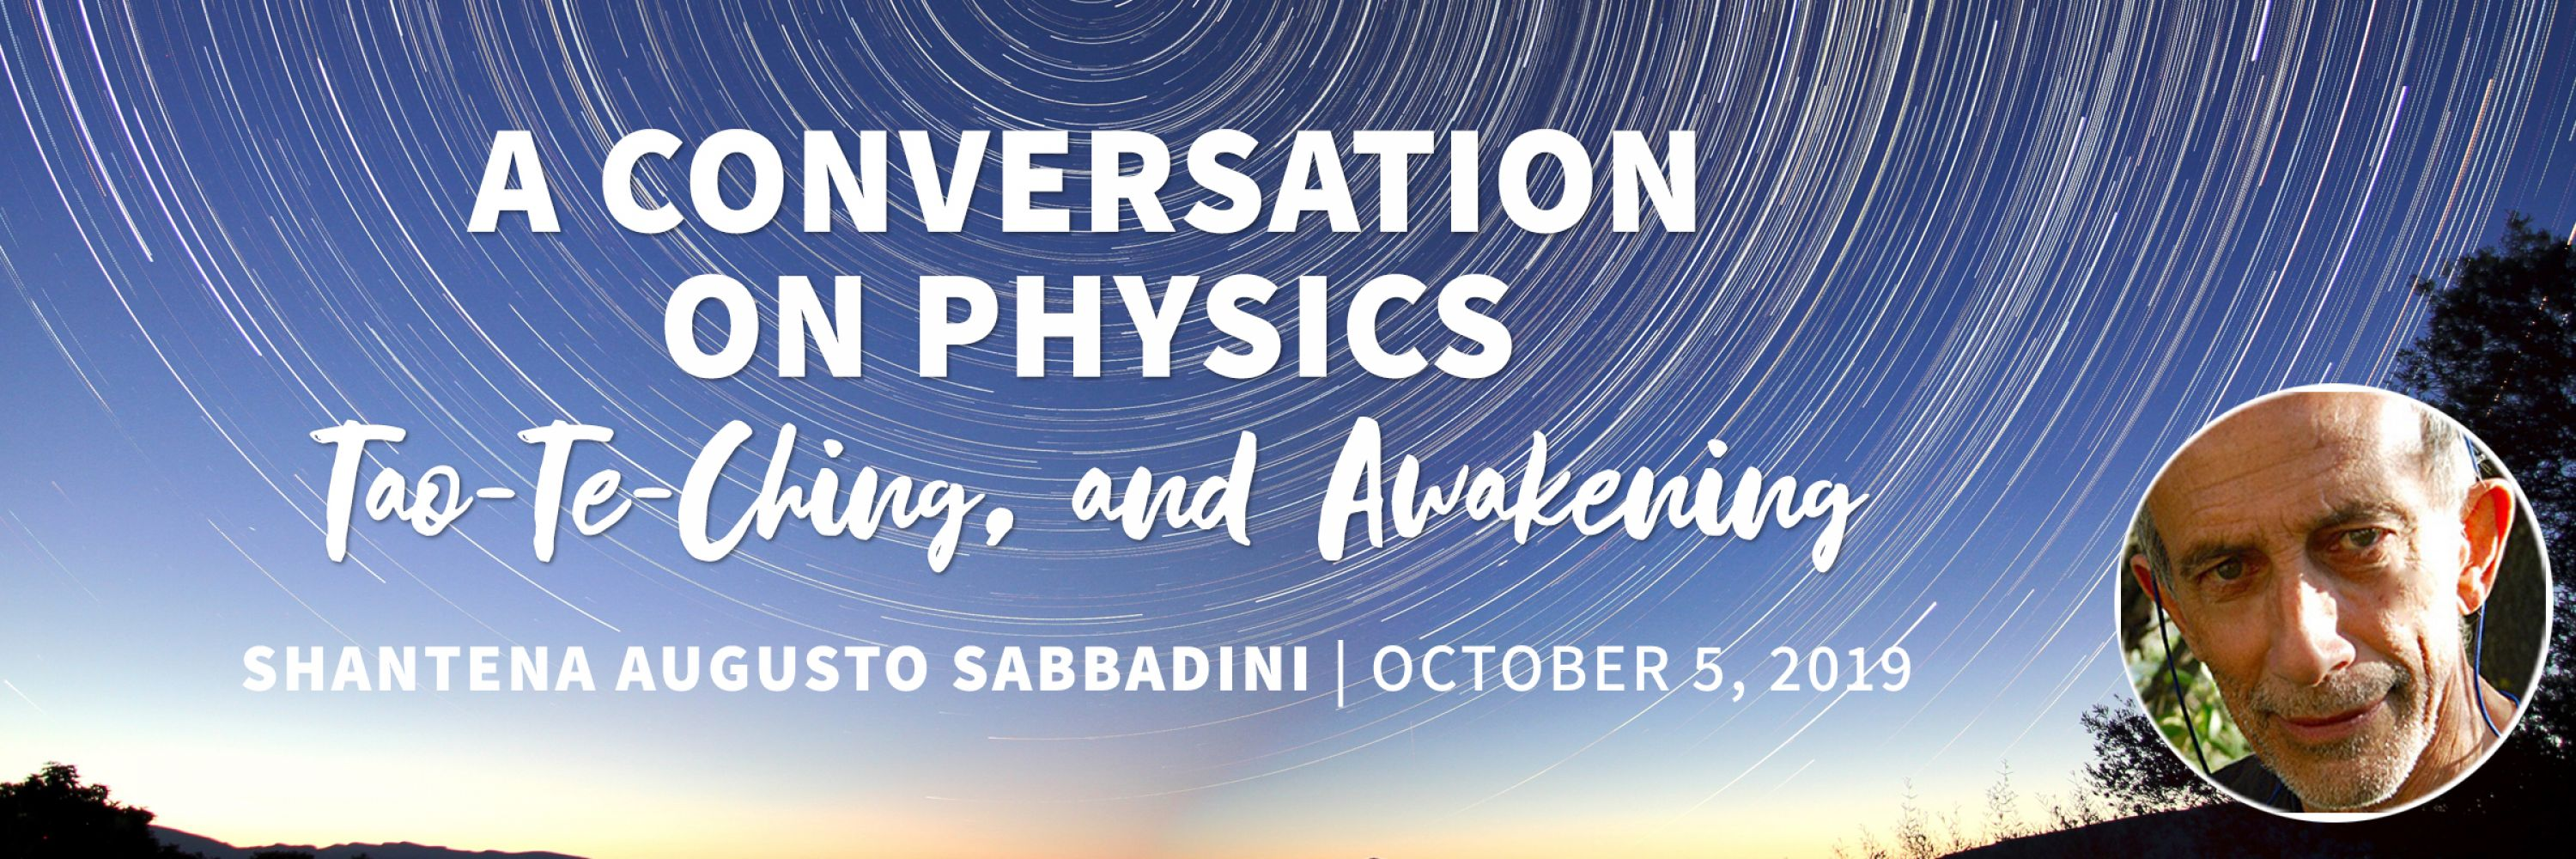 A Conversation on Physics, Tao-Te-Ching, and Awakening